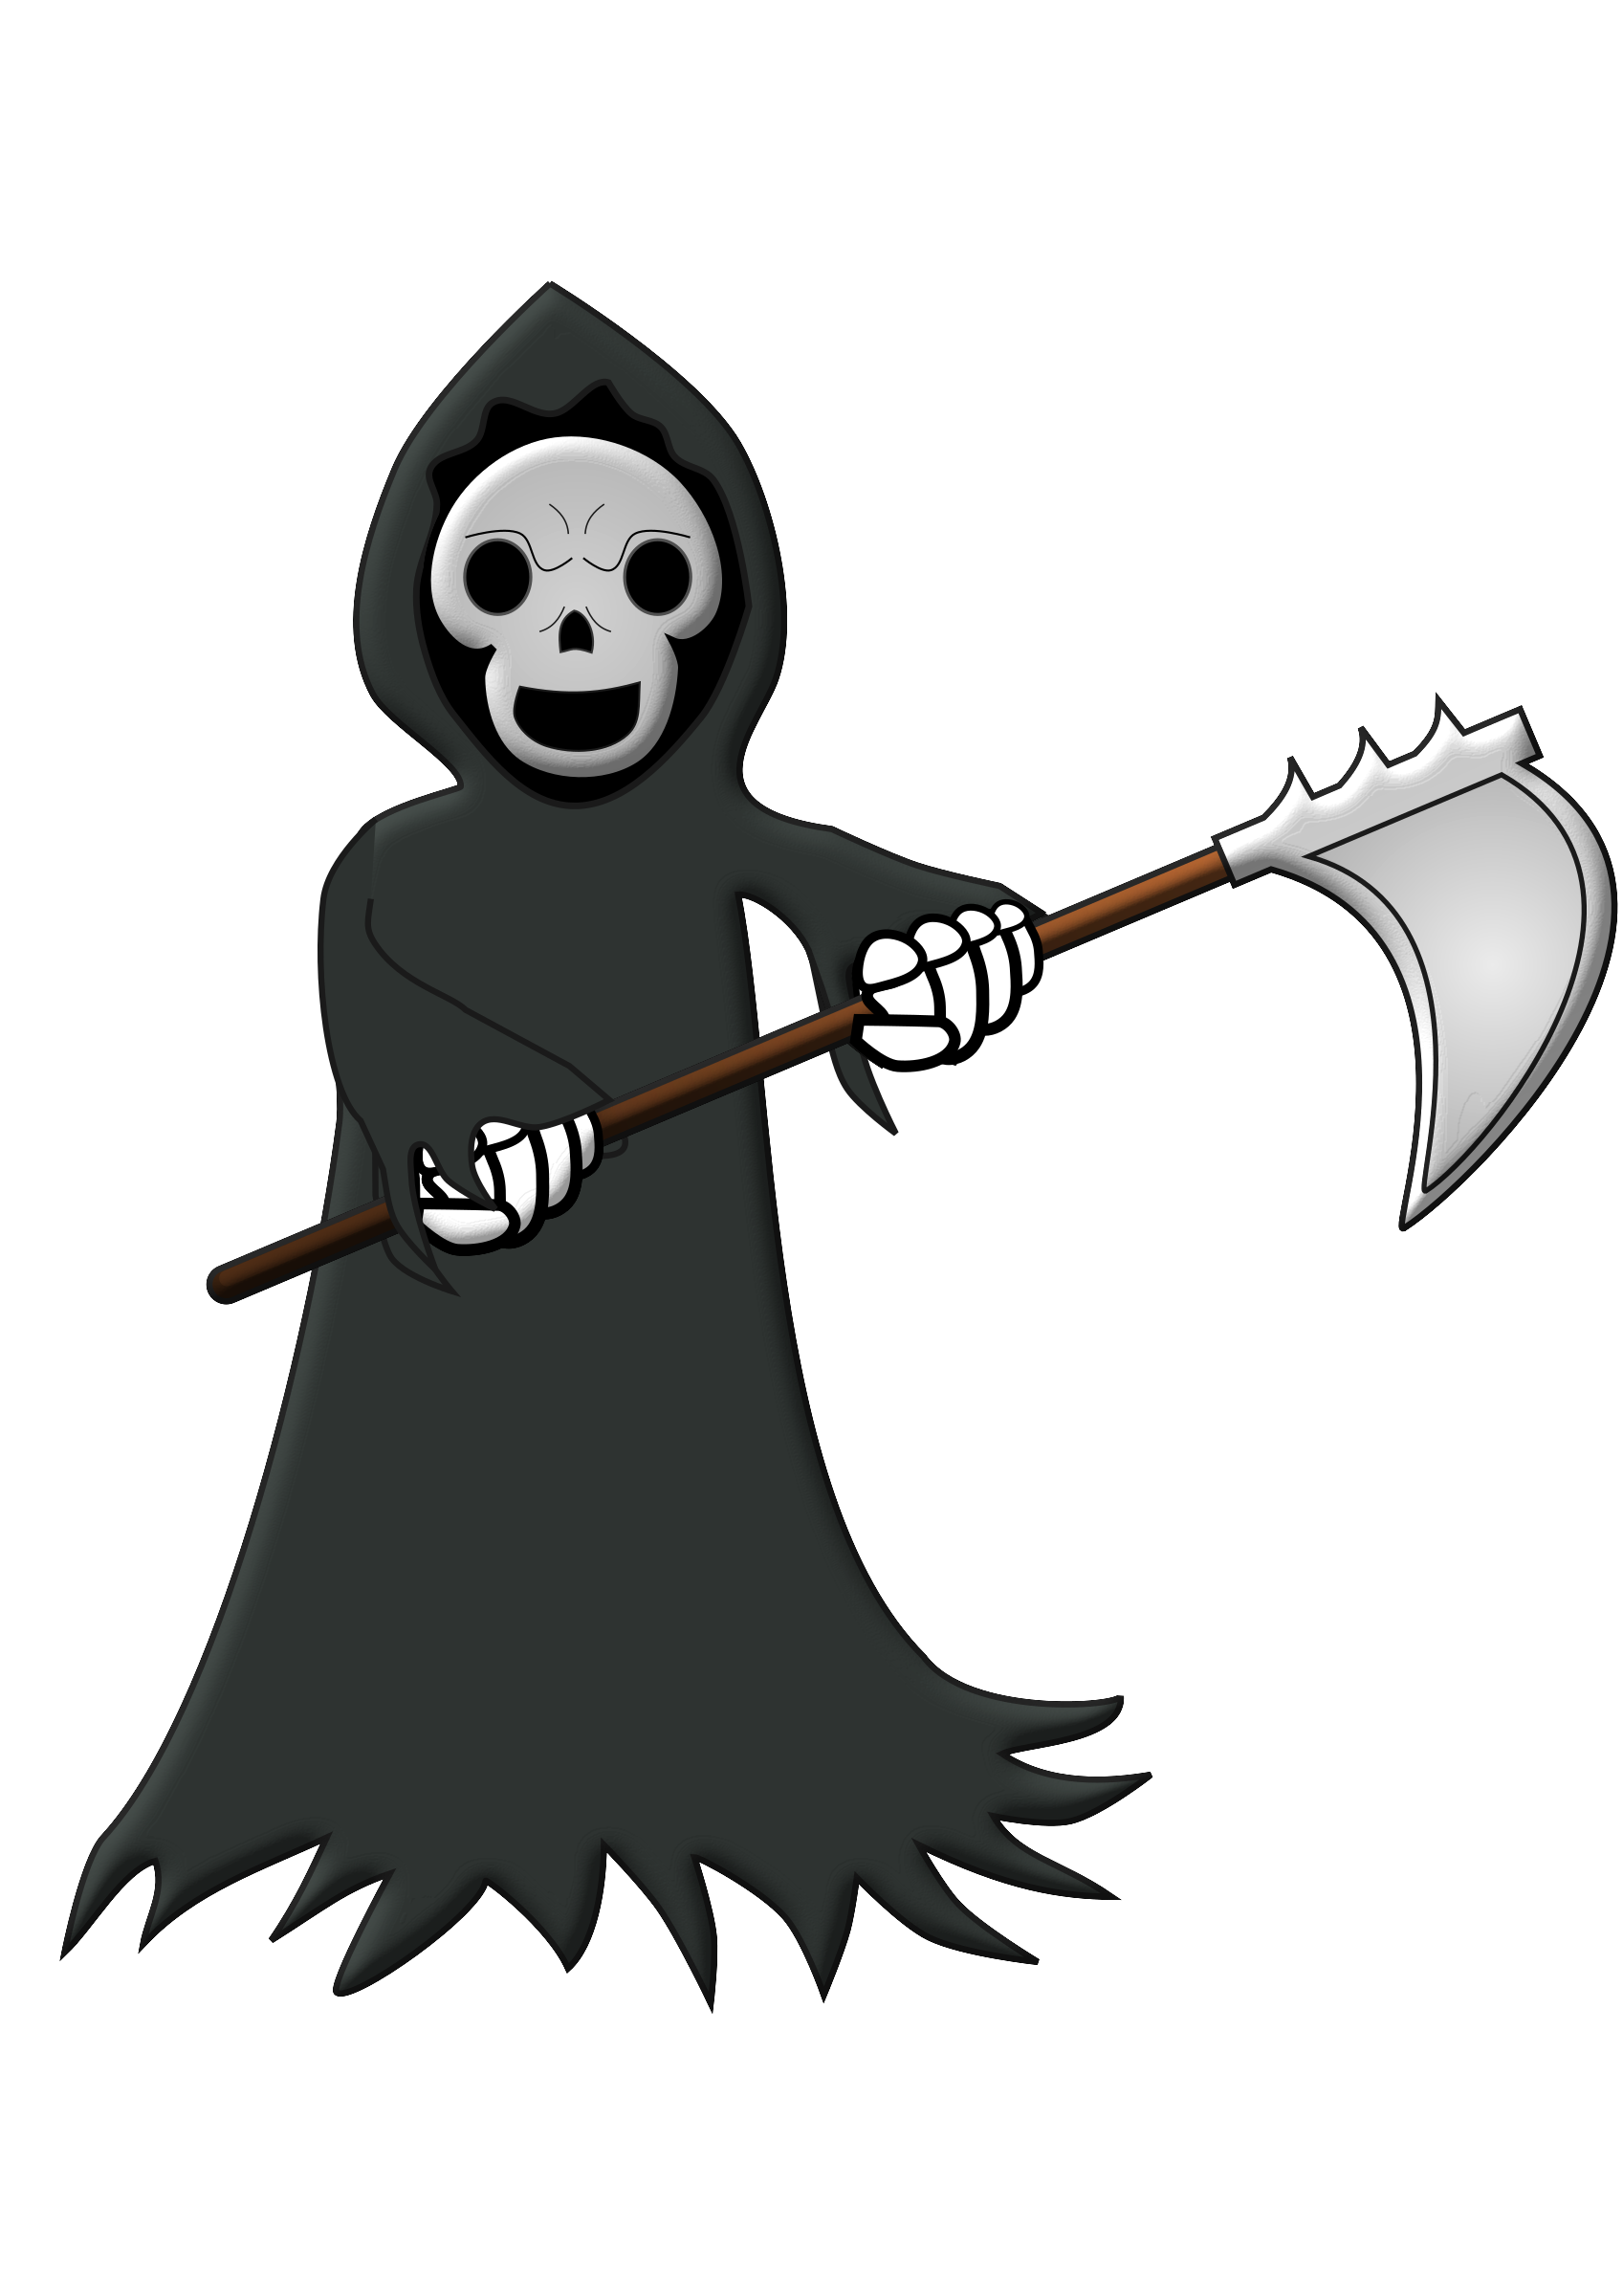 freeuse library Grimm free on dumielauxepices. Grim reaper clipart